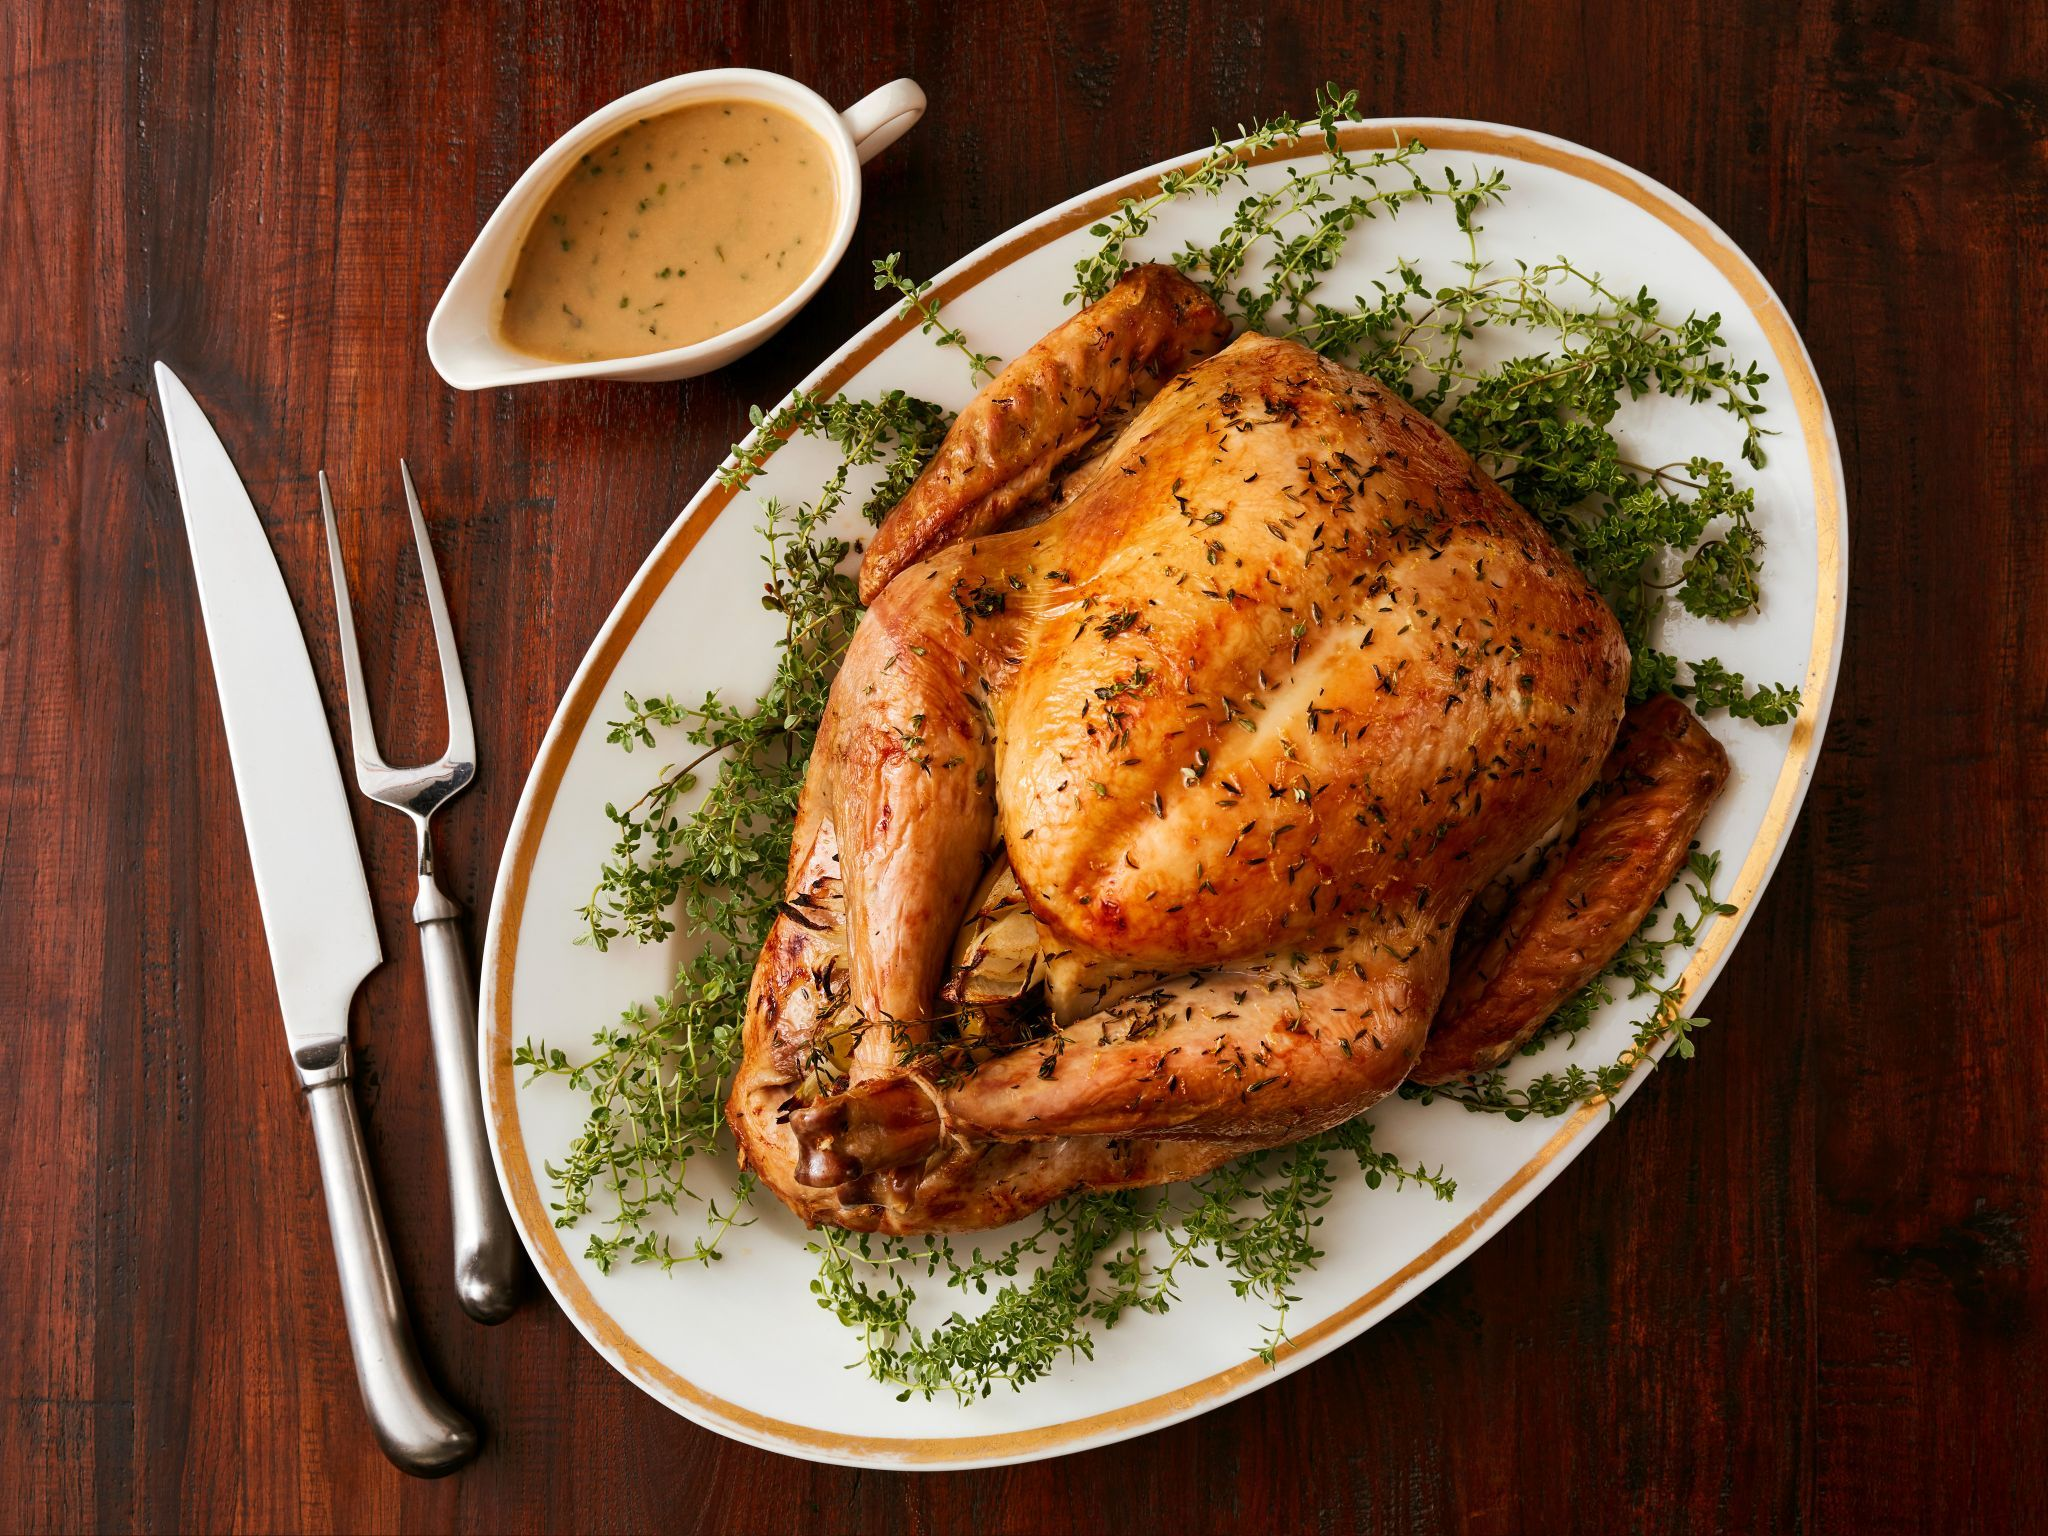 Prosecco roasted turkey with lemon and thyme recipe from food prosecco roasted turkey with lemon and thyme recipe from food network kitchen via food network forumfinder Gallery